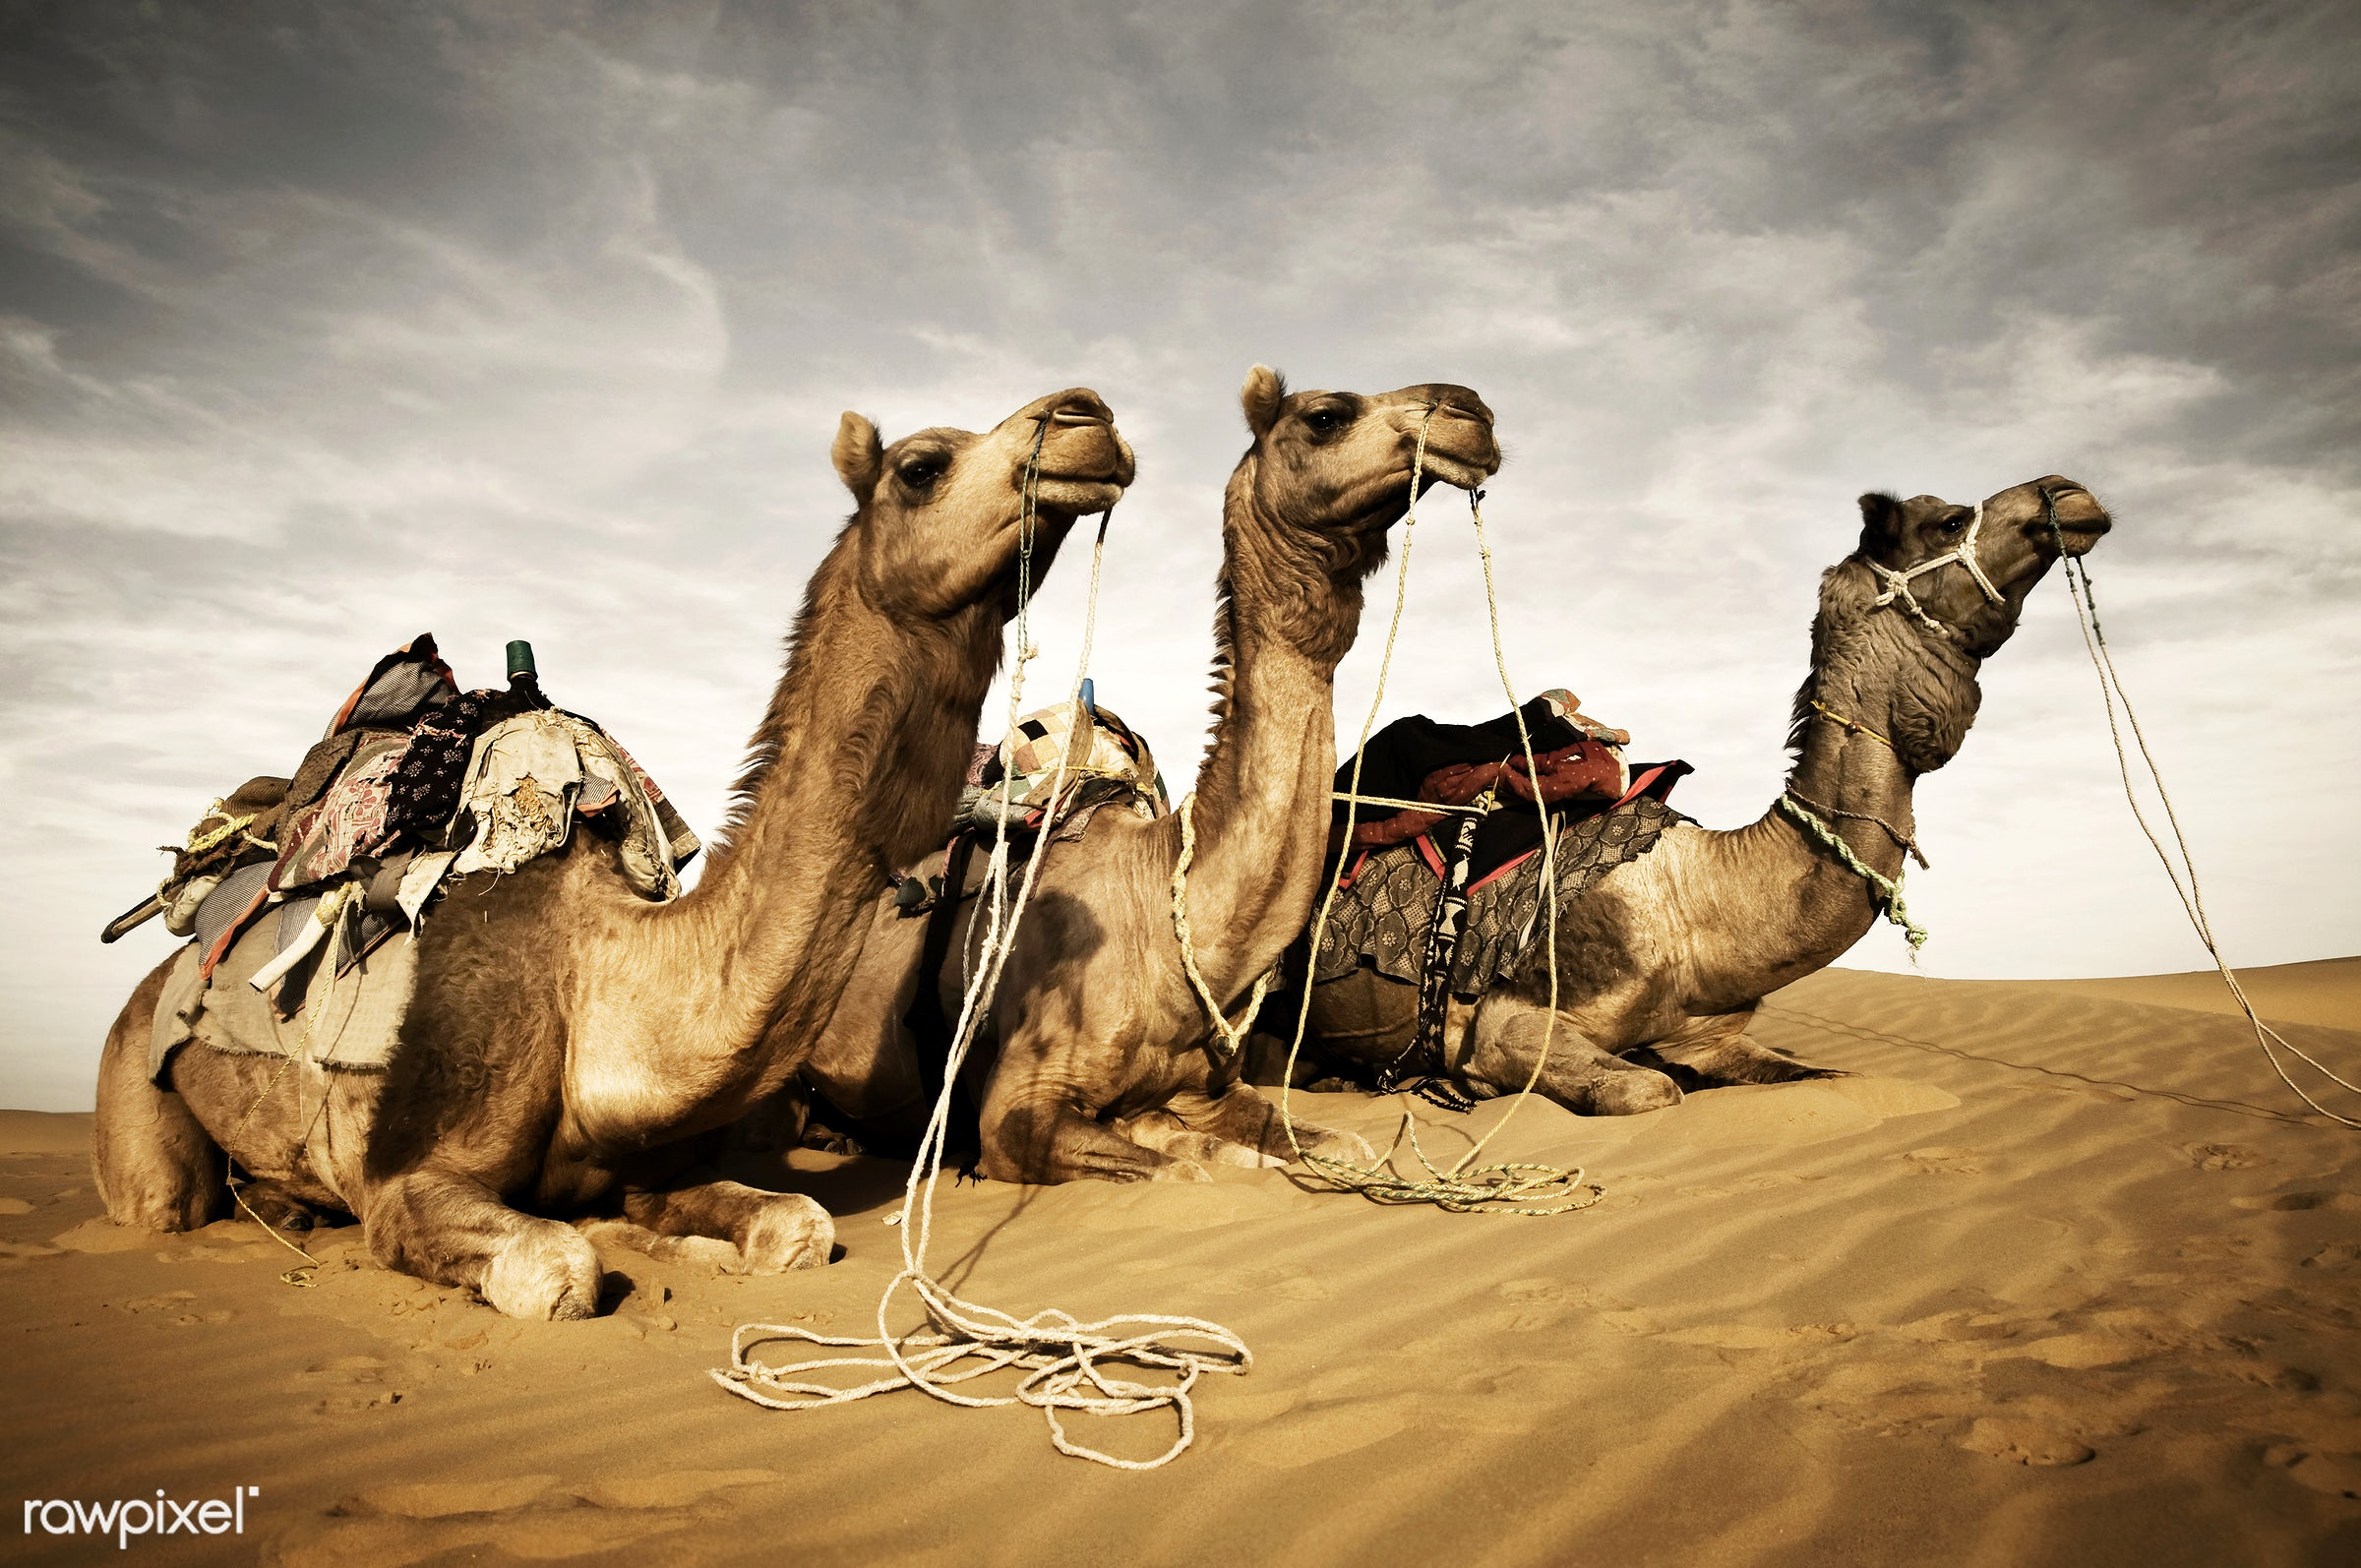 Camels resting in the Thar desert, Rajasthan, India - ancient, animal, animal themes, arabia, camel, carved letters,...